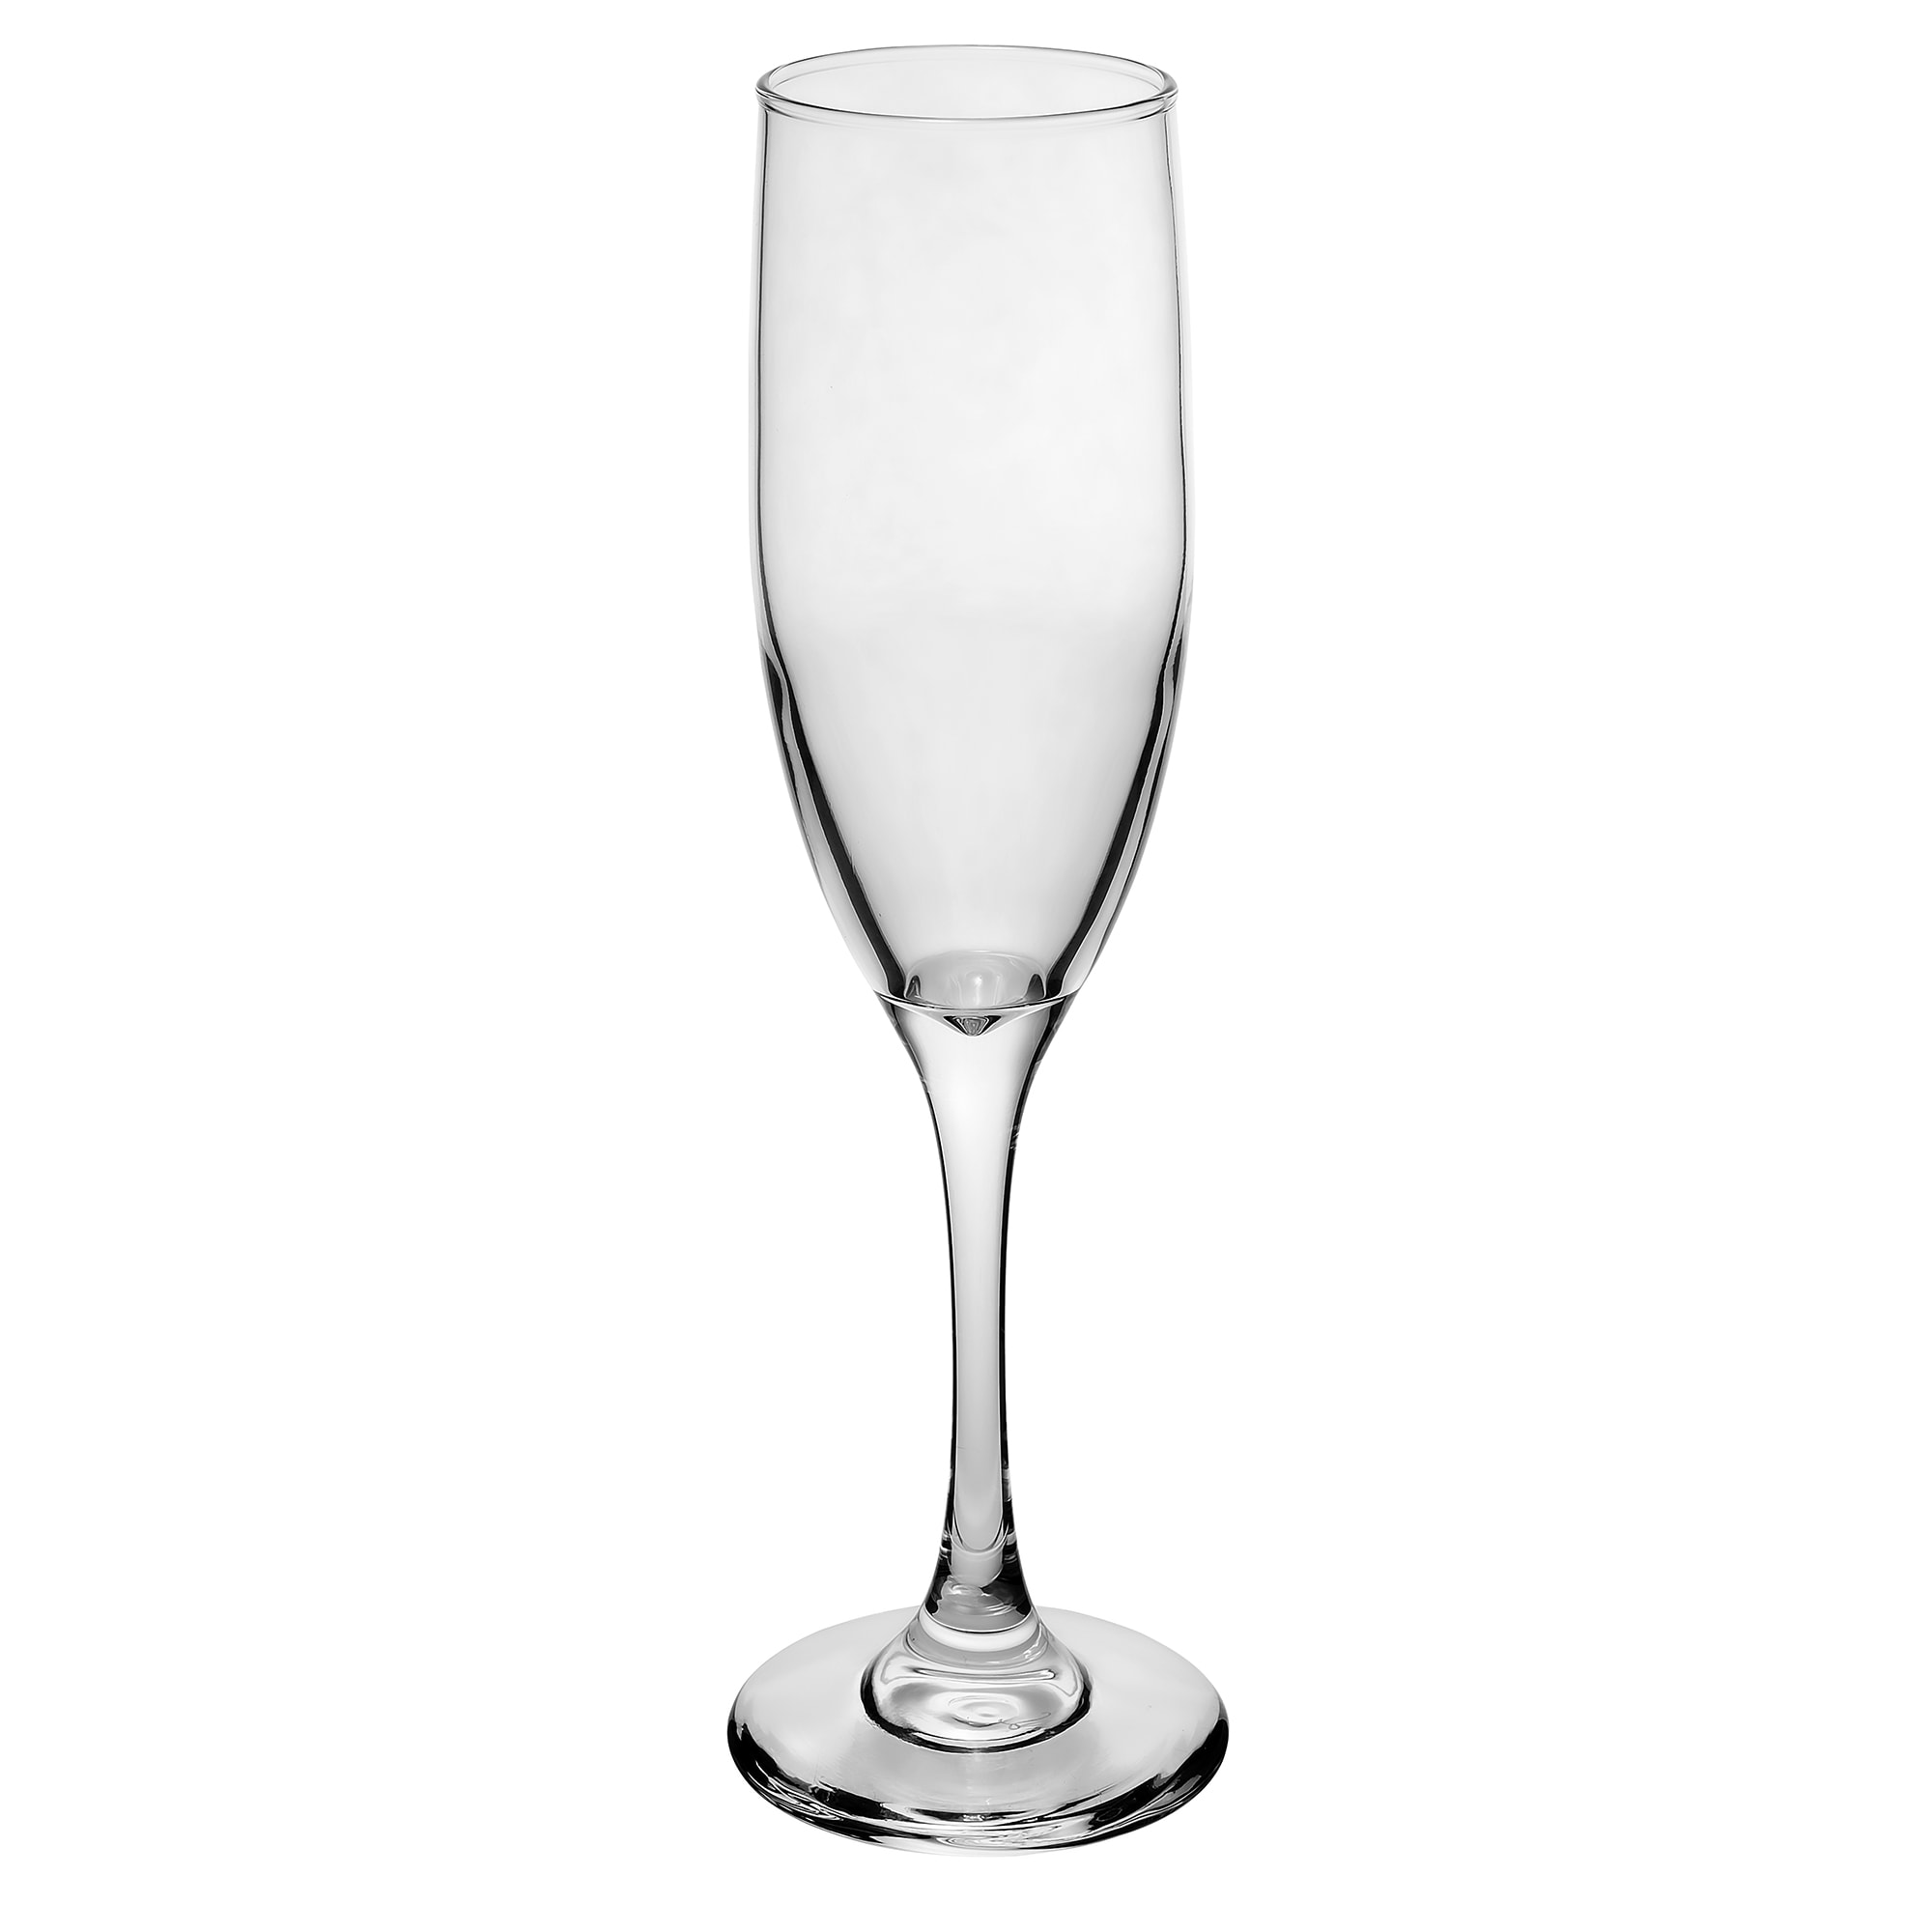 Libbey 3796 6 oz Embassy Royale Tall Flute Glass - Safedge Rim & Foot